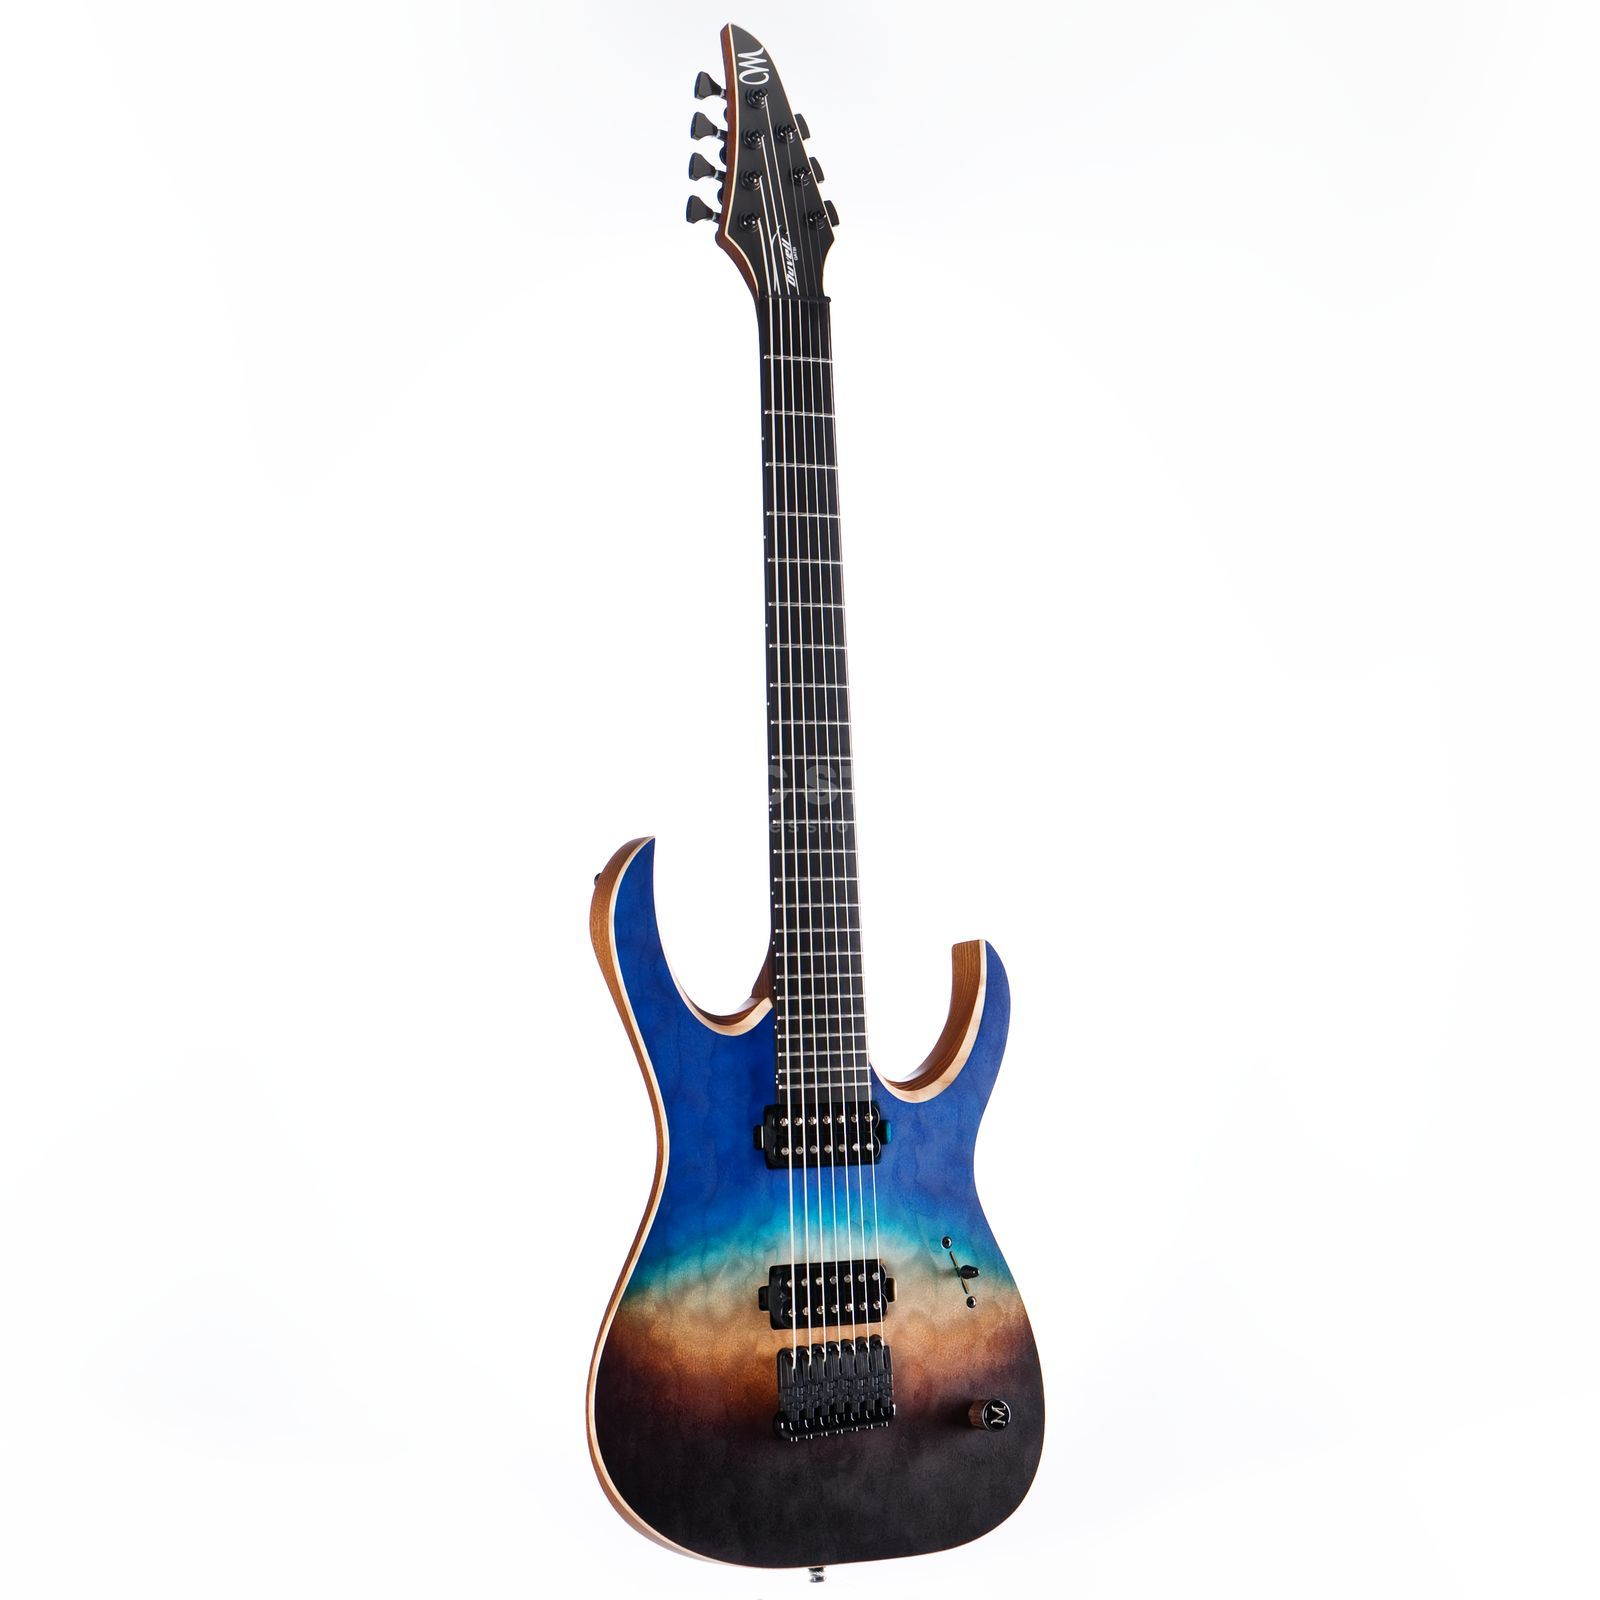 Mayones Duvell QATSI 7 Deluge John Brown Signature Product Image